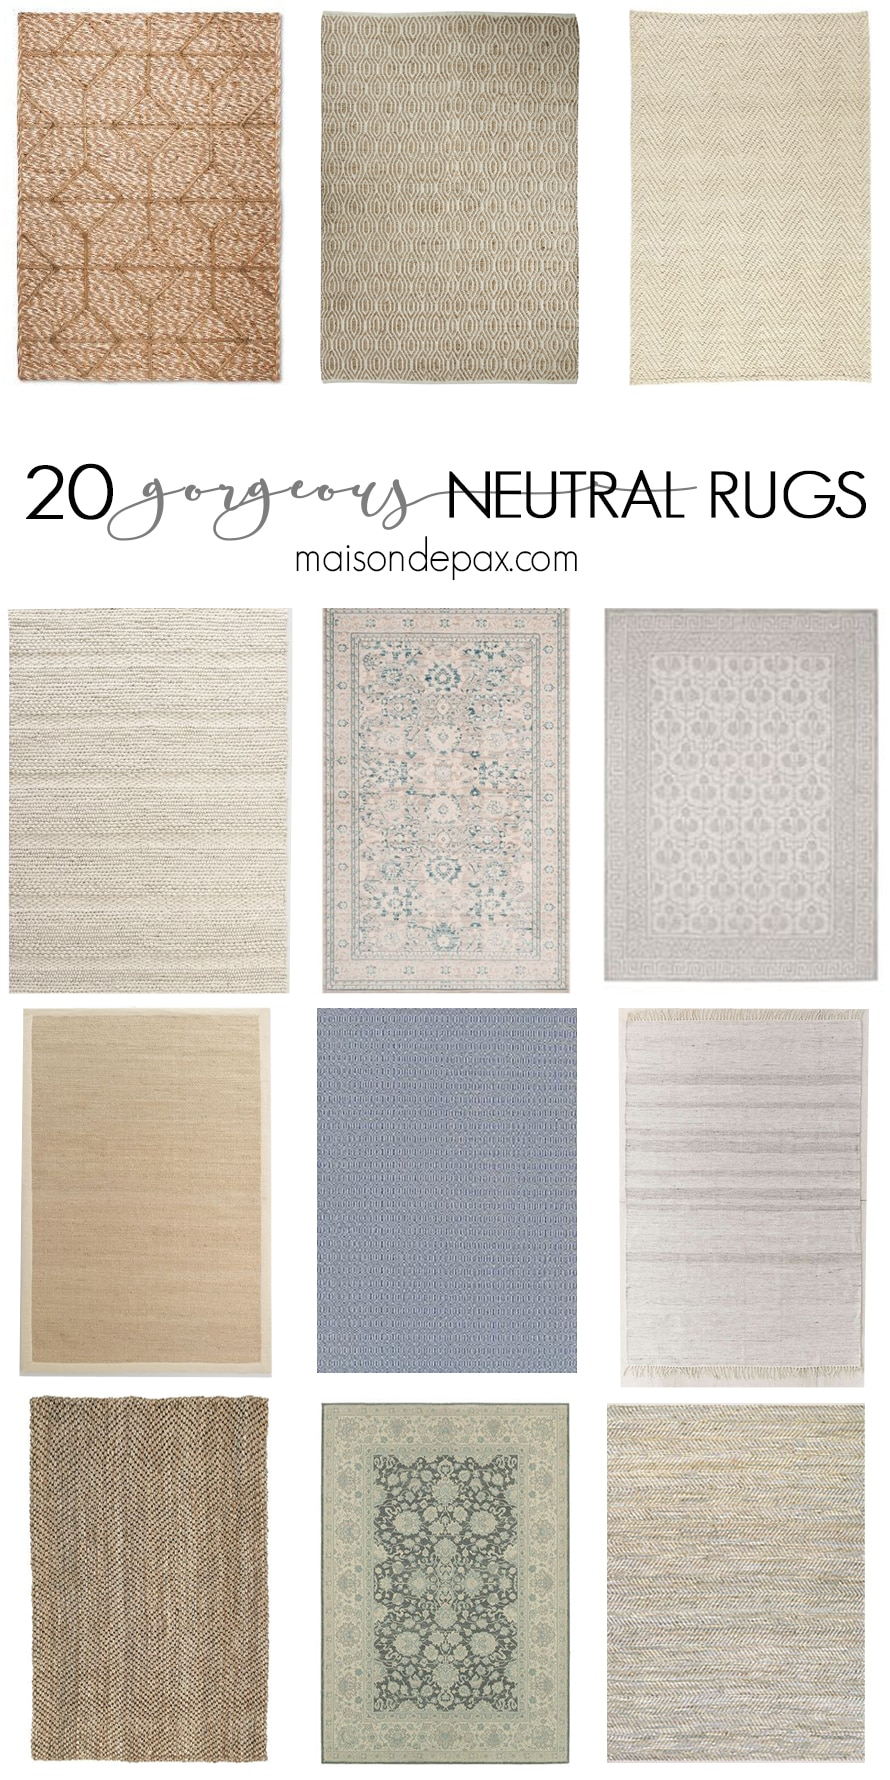 20 gorgeous neutral rugs! From traditional to modern, these neutral rugs are a great complement to any space. Bring in texture and beauty with one of these great finds.